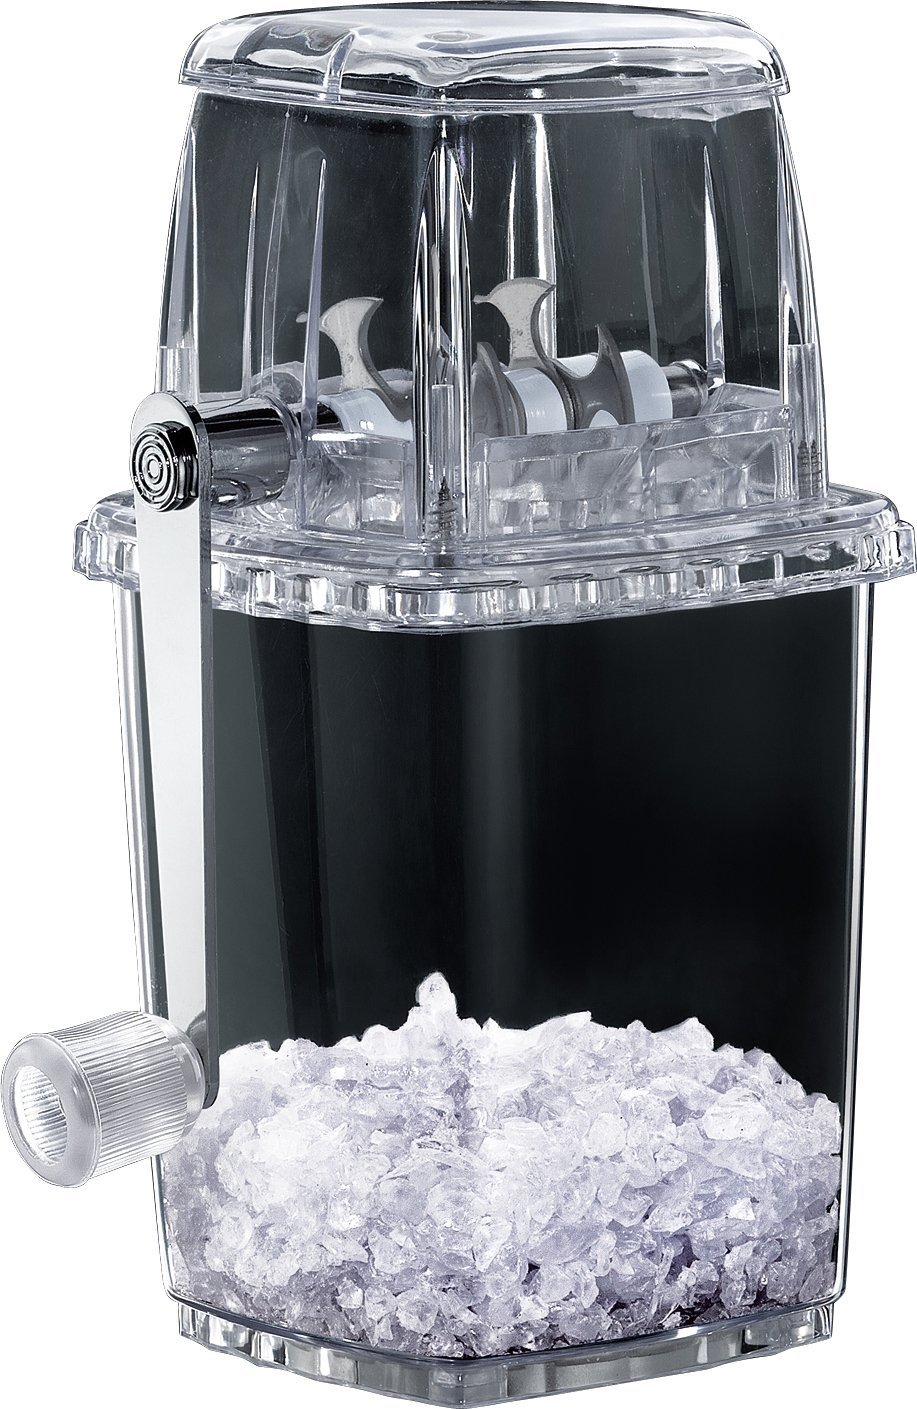 IUME Ice Crusher Manual Hand-operated Small Home Manual Grinding Smoothie Mini Chopper Easy to Use by IUME (Image #2)